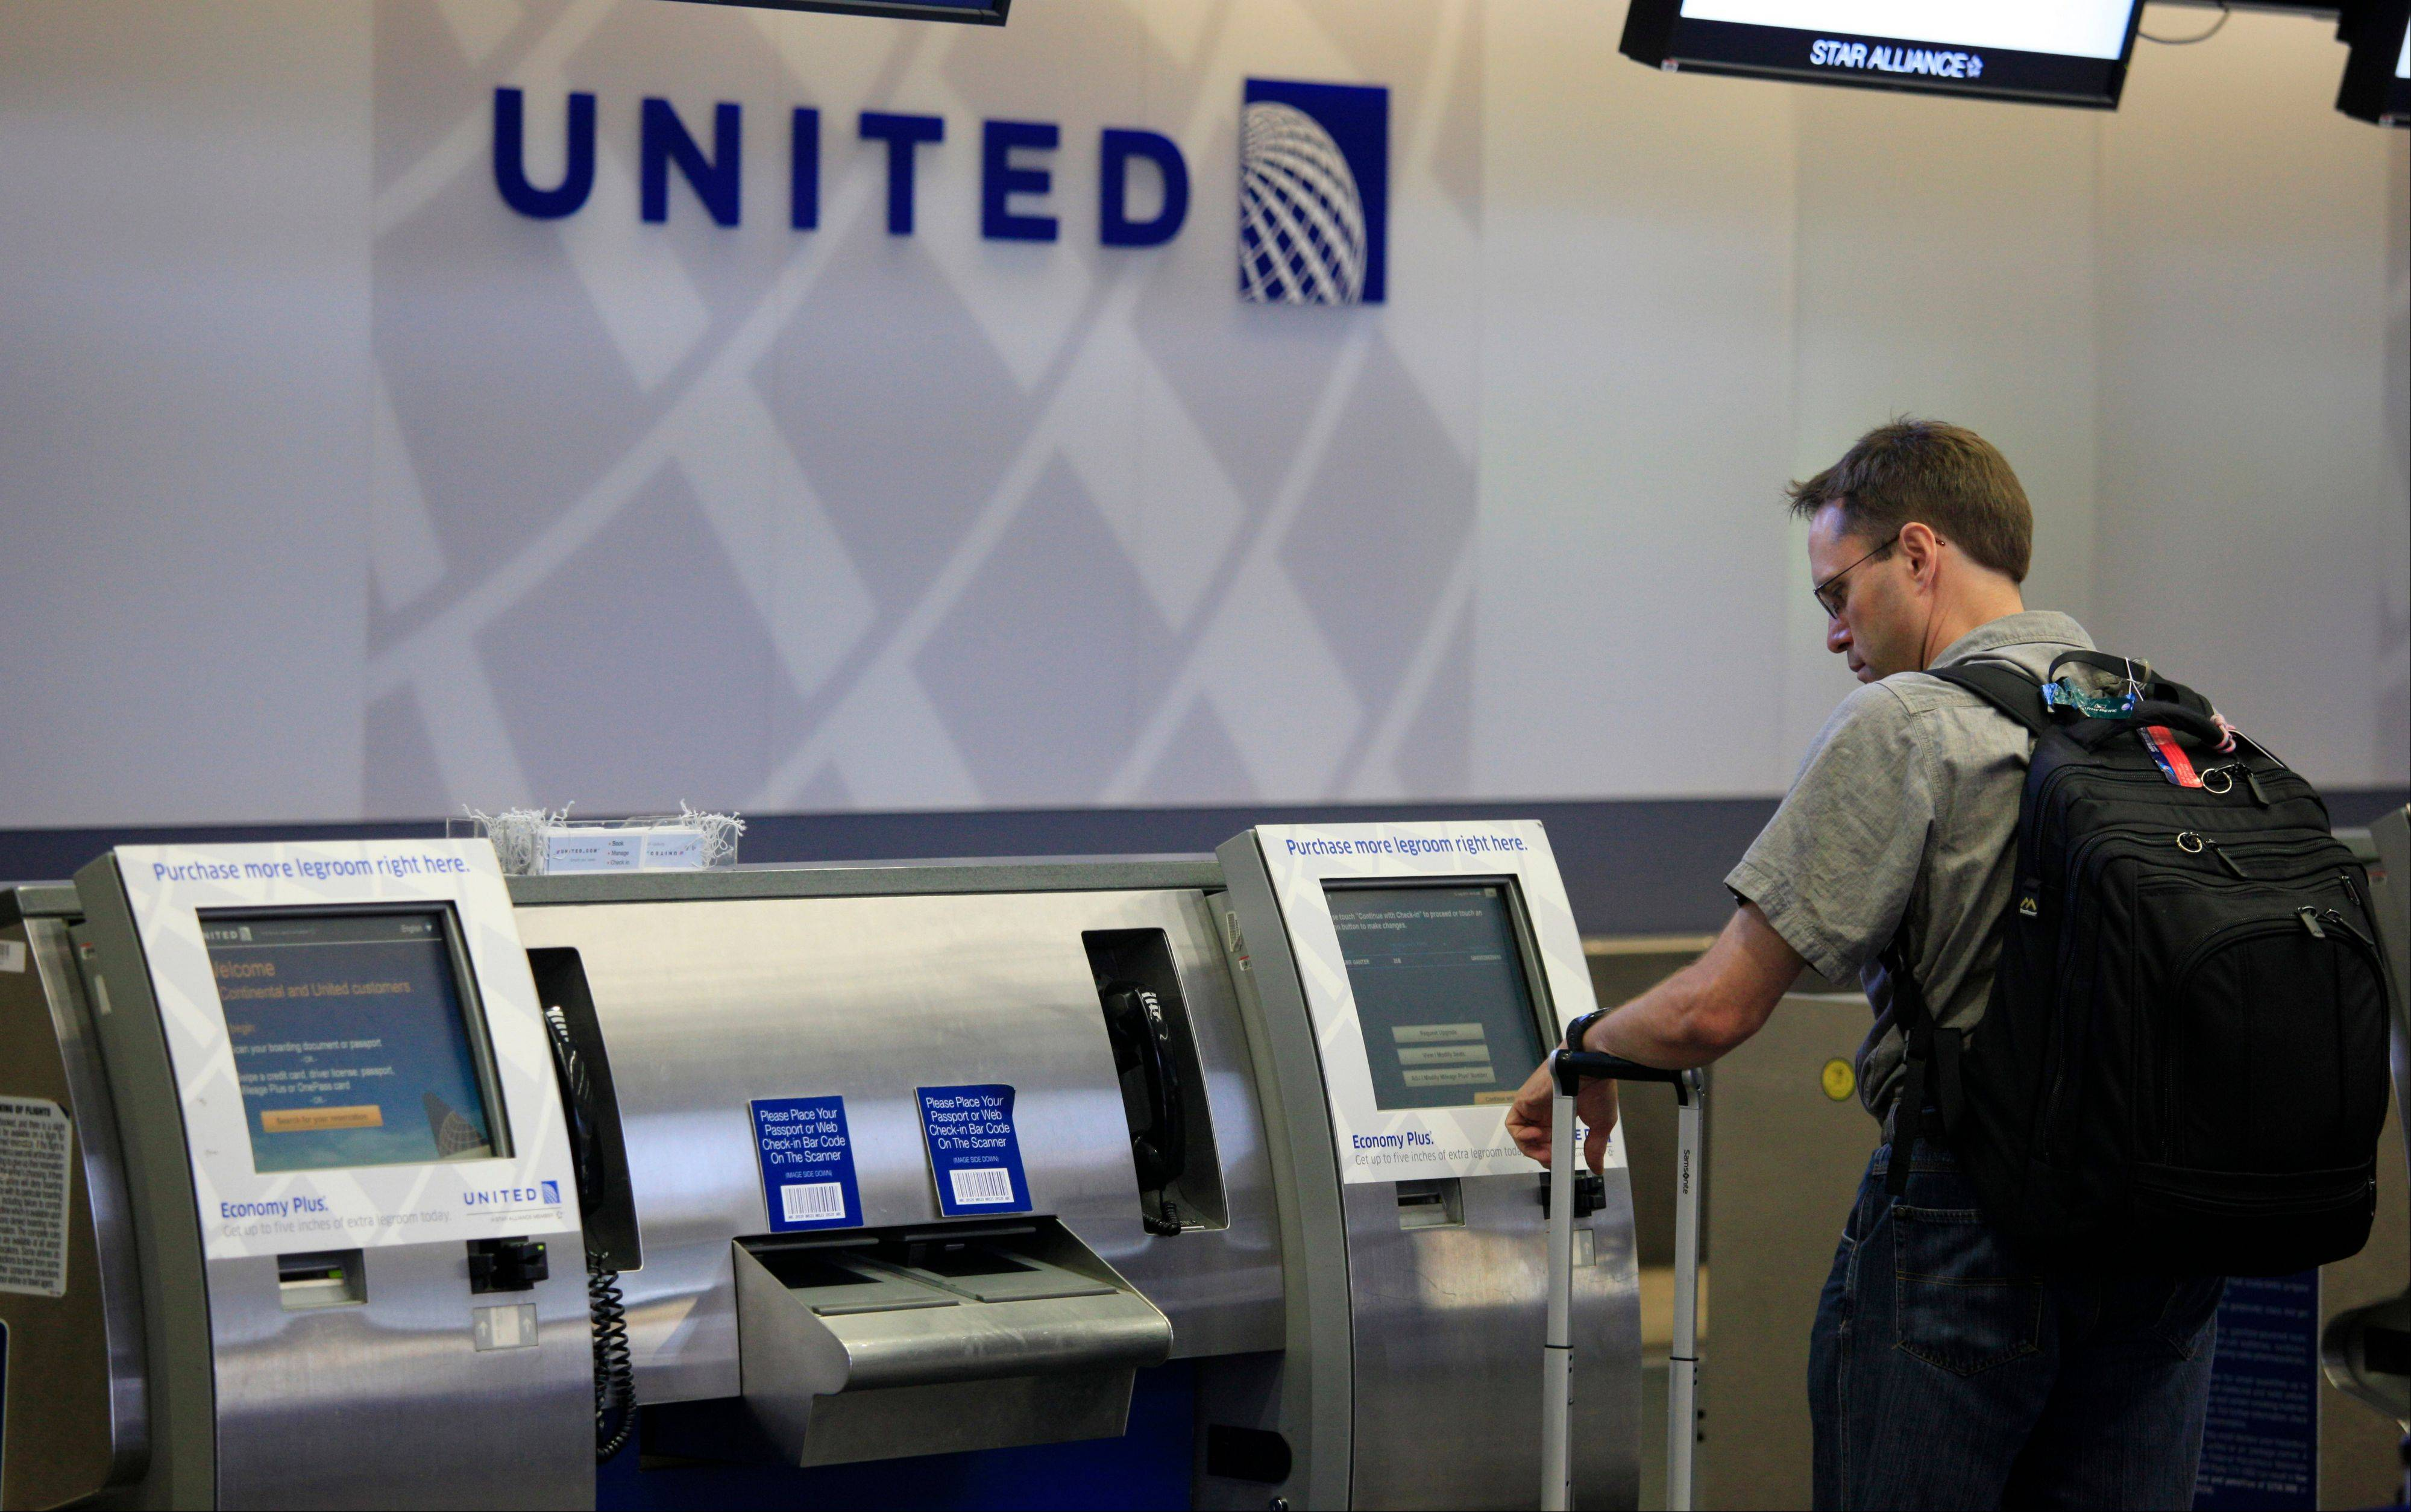 A man uses a United Airlines check-in kiosk at San Francisco last month. United passengers faced delays Tuesday after some of its major computer systems and website failed.